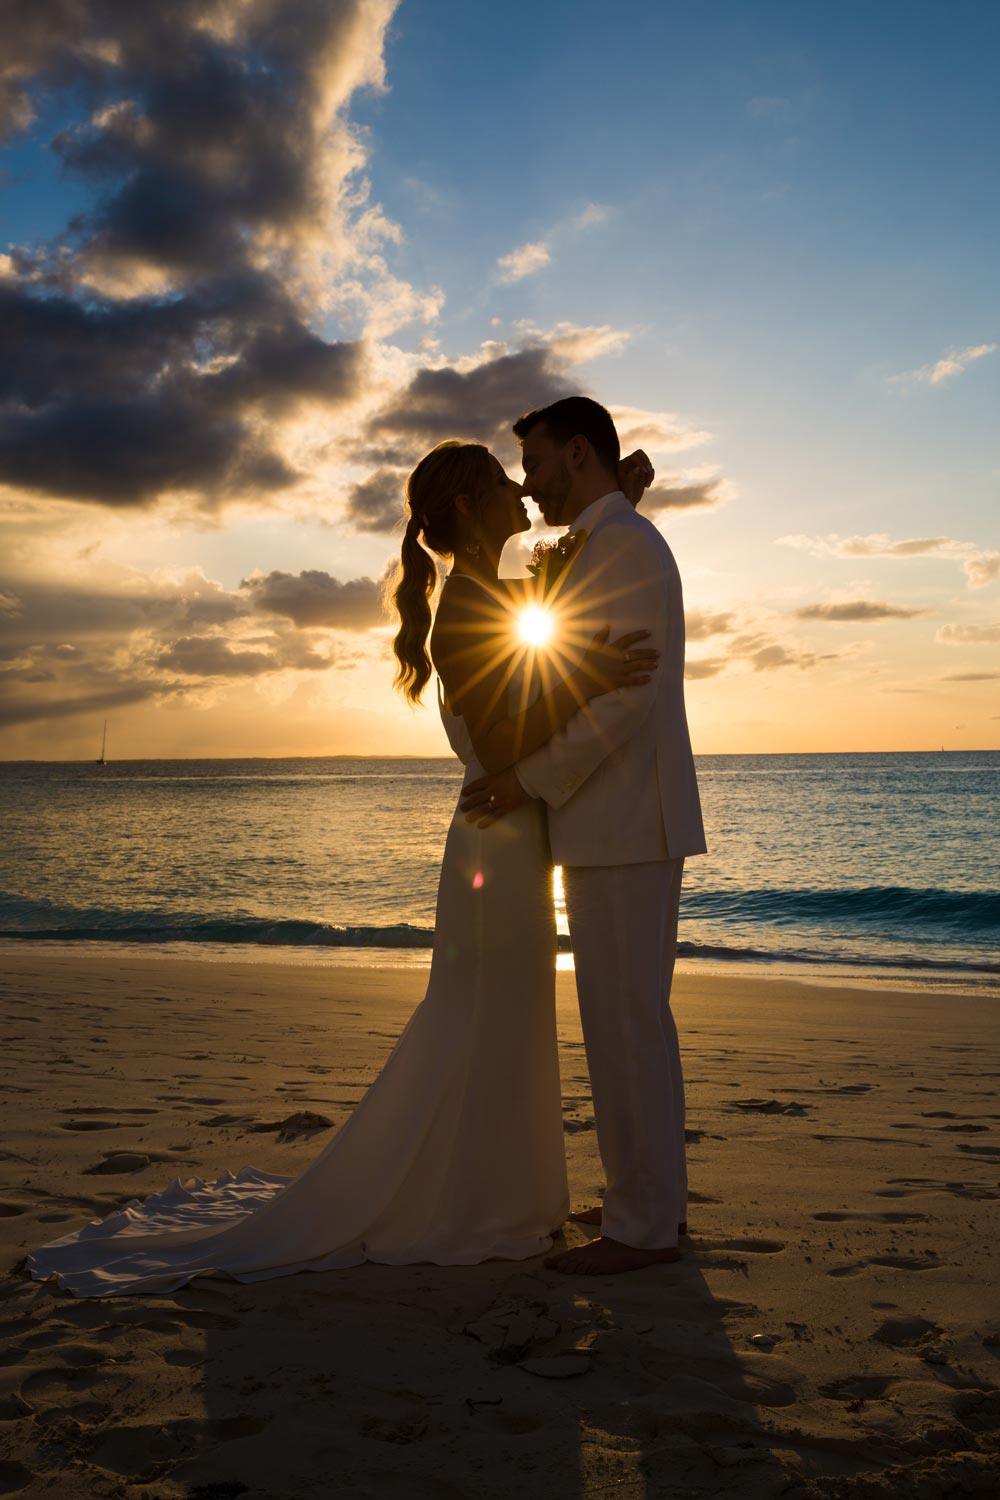 Sunset beach Romantic, Turks Caicos Photographers